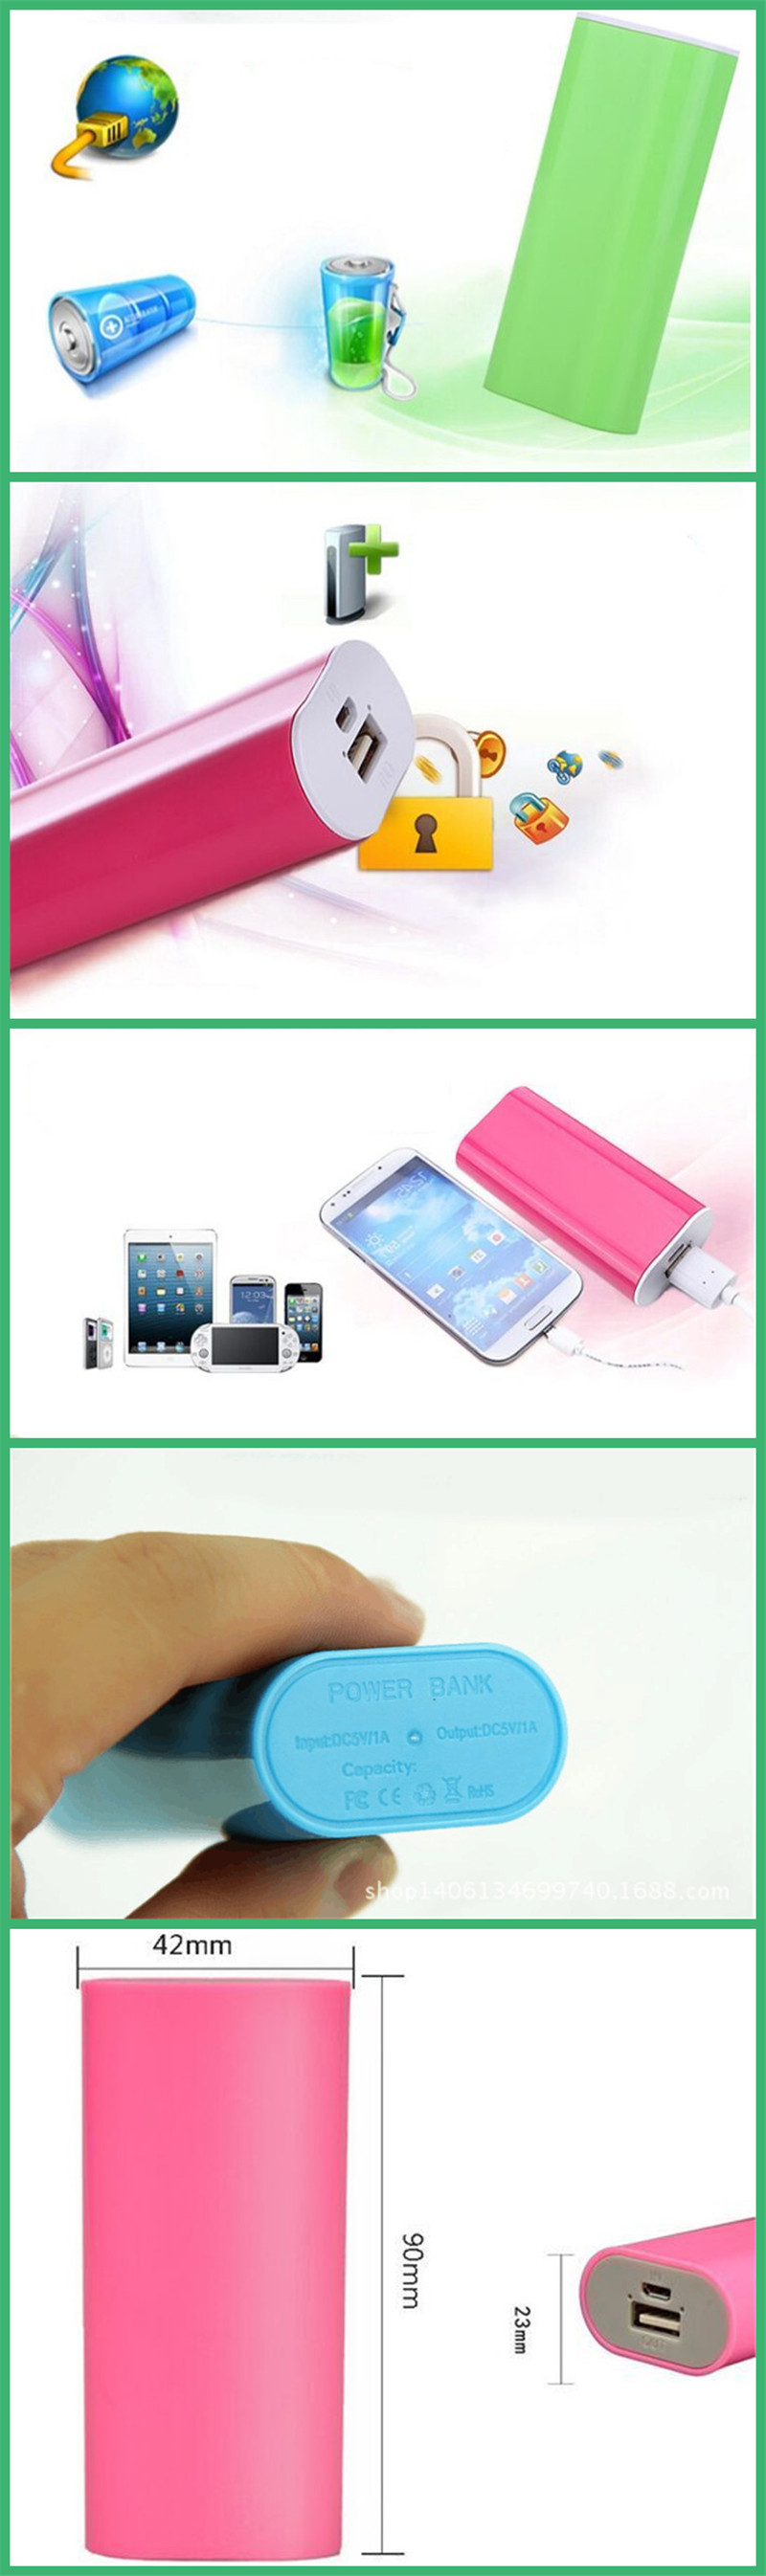 Portable Keychain Mini Battery Charger With Power Bank Model JEC-022PB